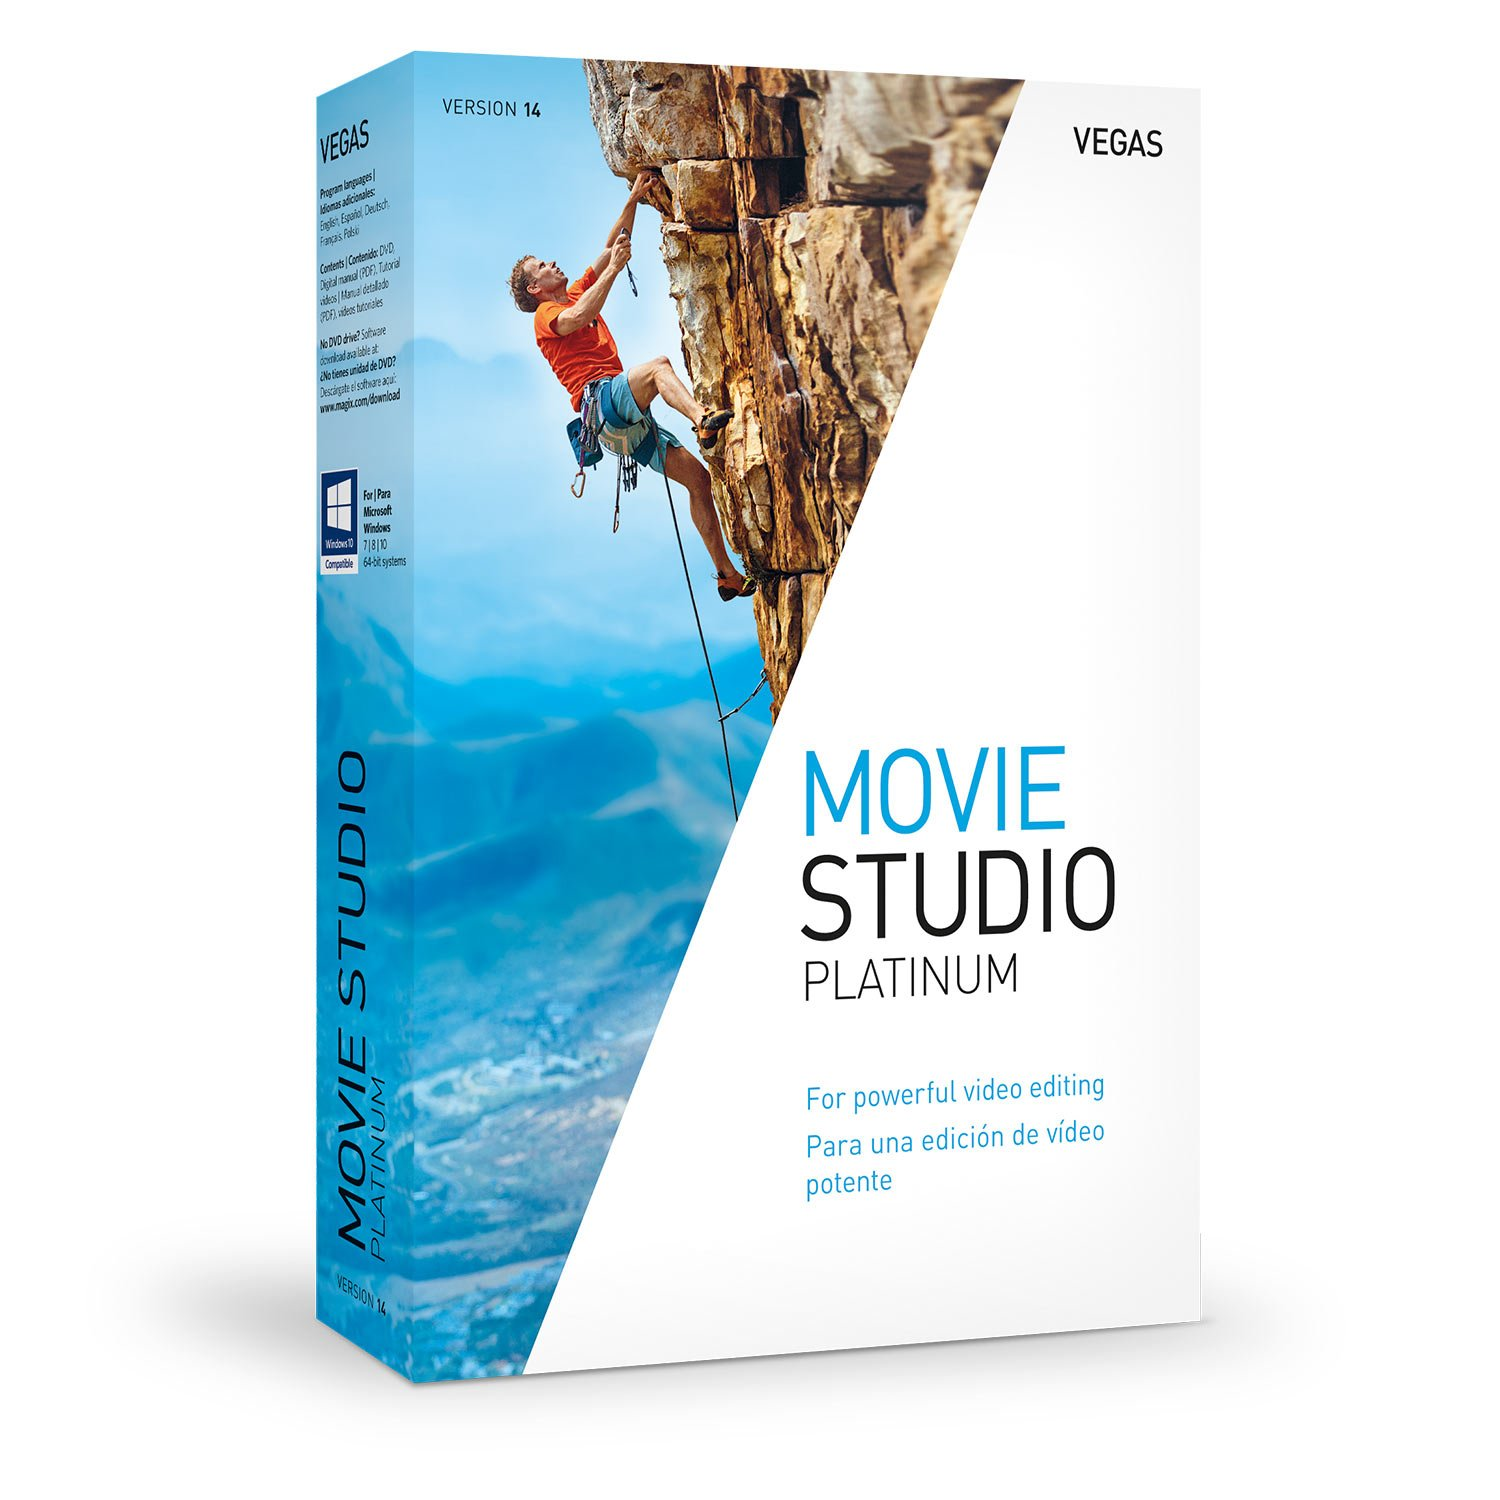 VEGAS Movie Studio 14 Platinum - Perfect support for creative video editing by Vegas